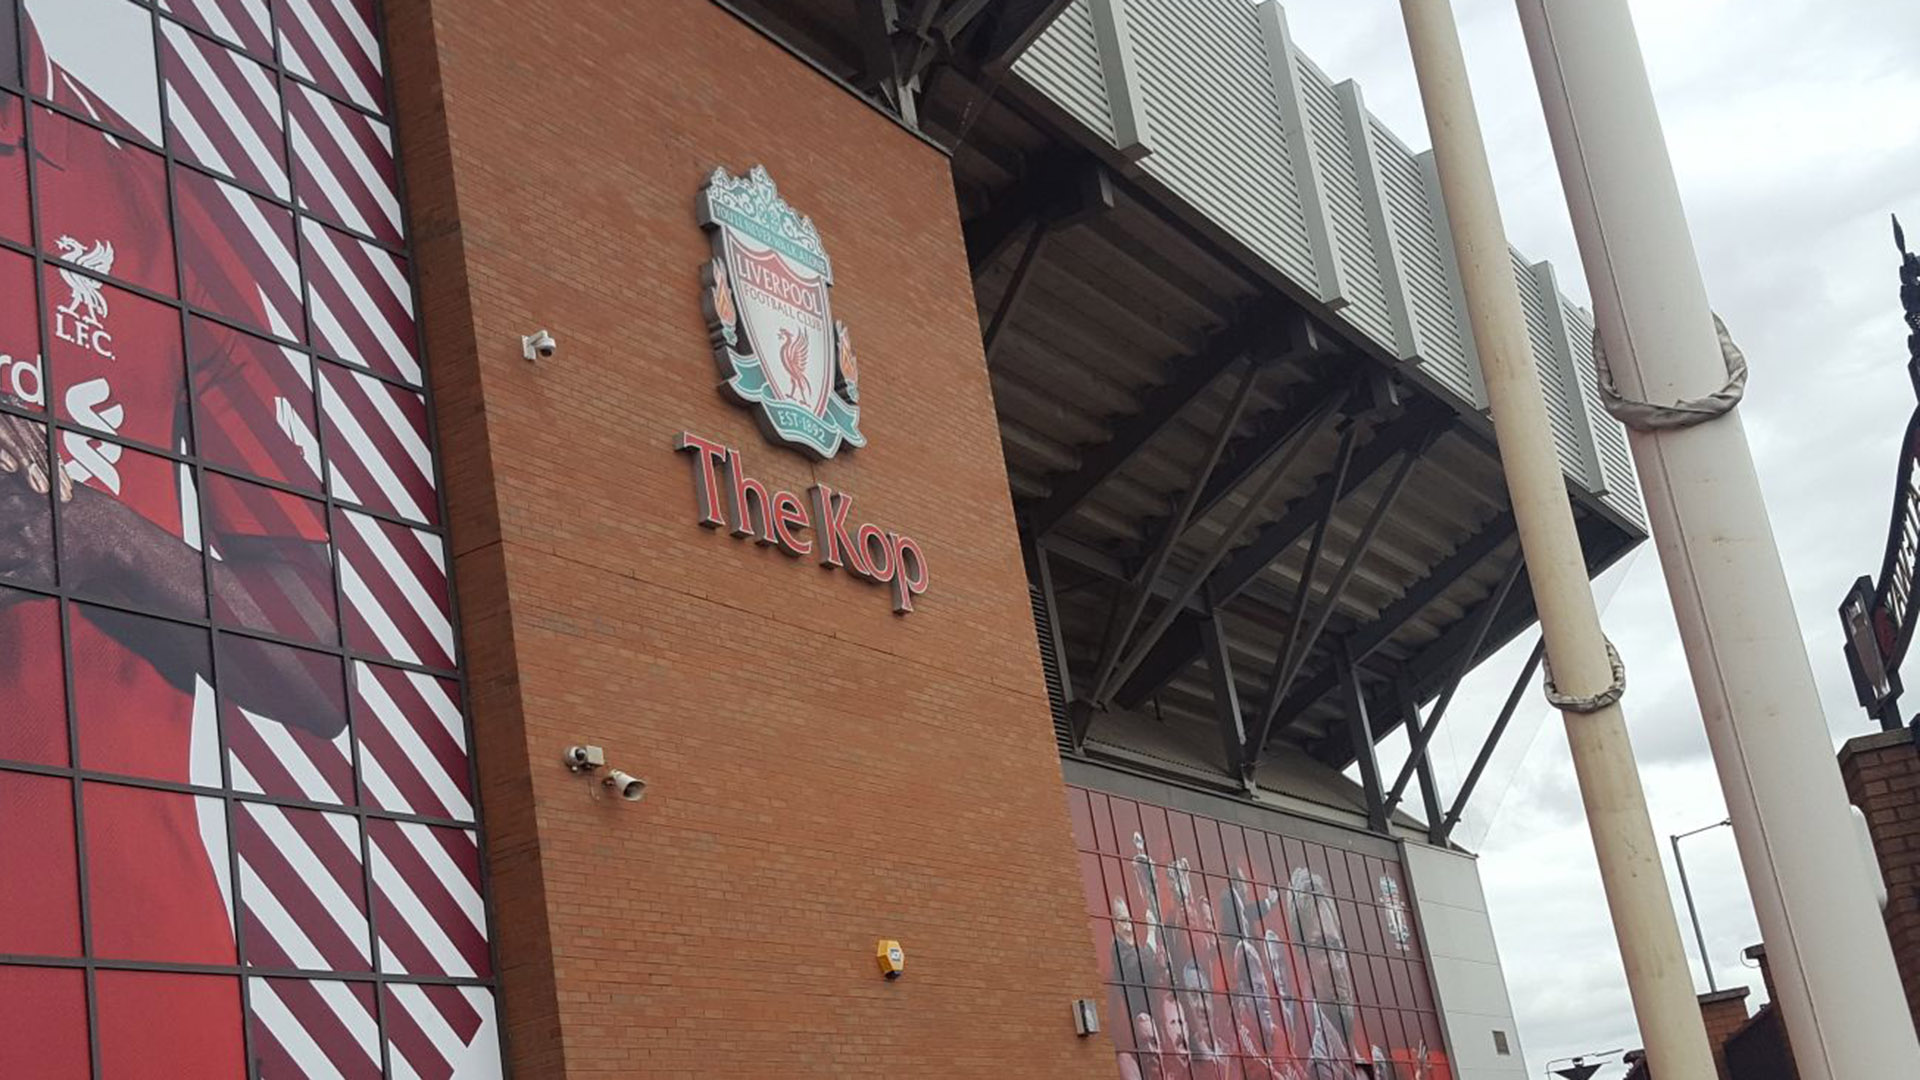 The Kop - Anfield